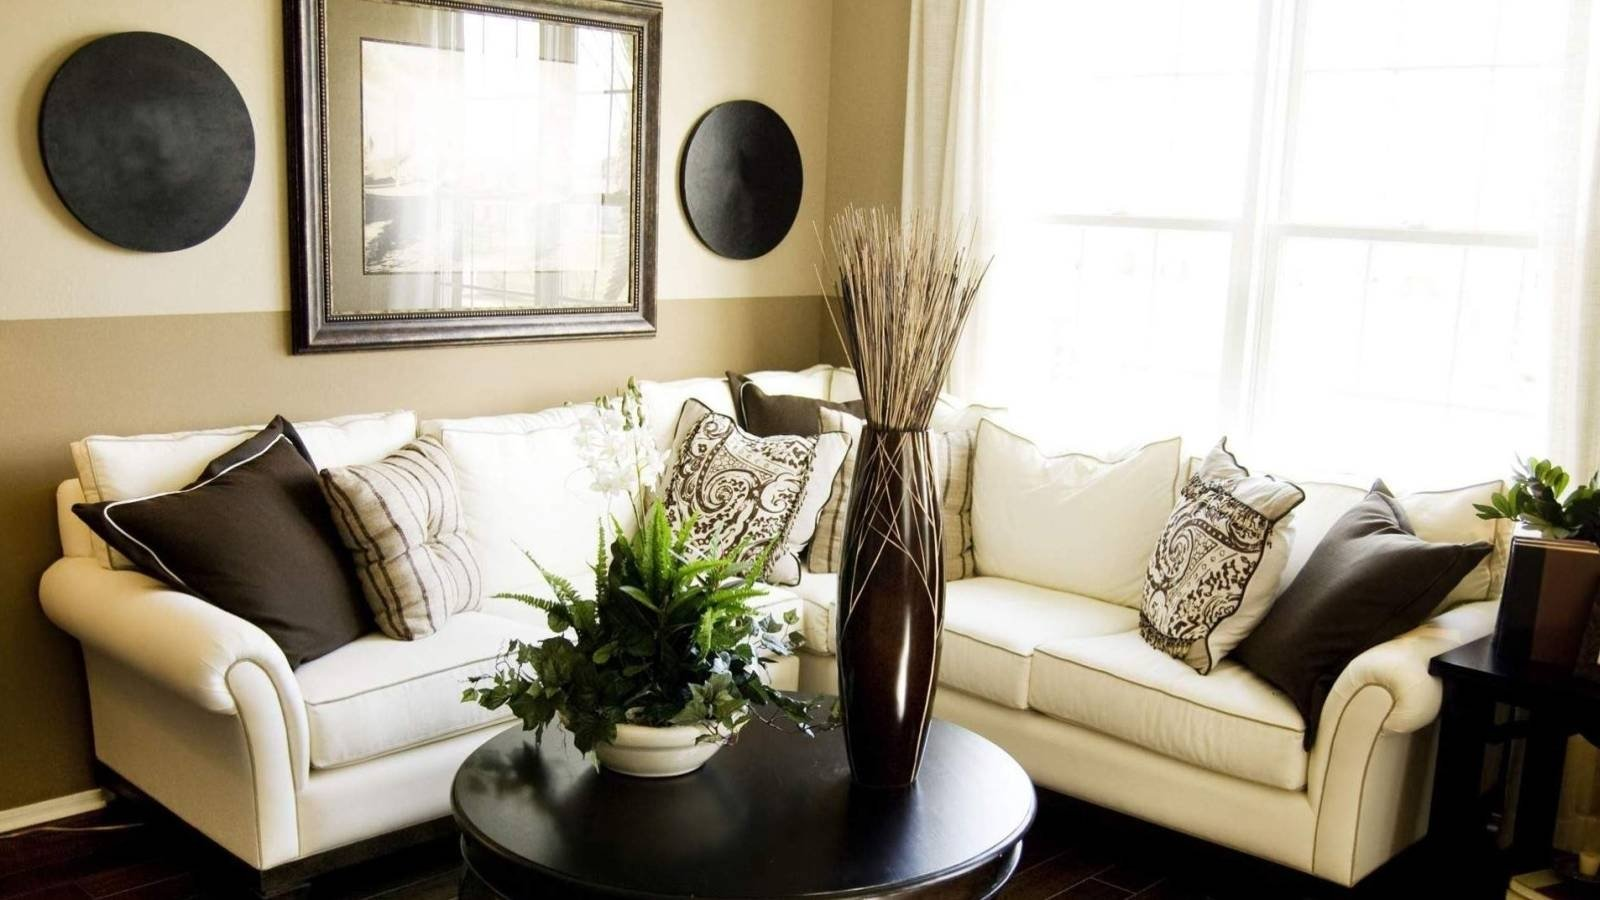 10 Fabulous Decorating Ideas For A Small Living Room 17 amazing small living room decorating ideas for cozy home 2021